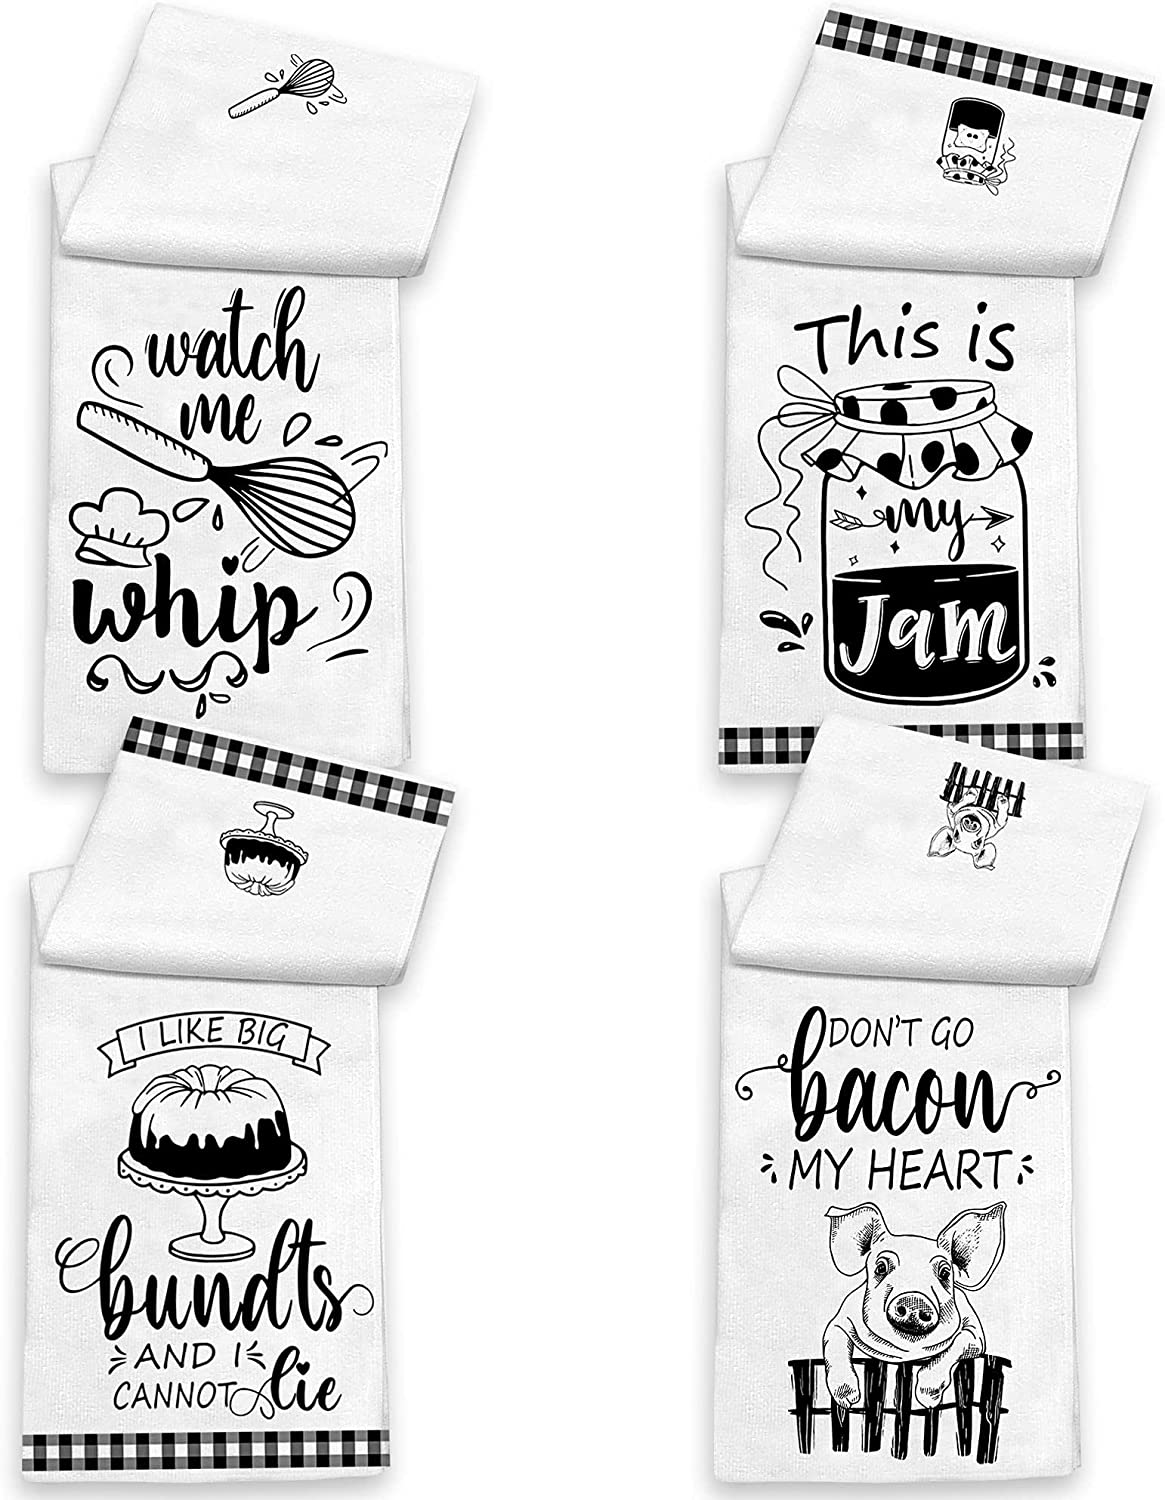 KamaLove Funny Kitchen Towels and Dishcloths Sets of 4 - Dish Towels with Sayings - House Warming Presents for New Home, Gifts for Women, Farmhouse Kitchen Decor, White